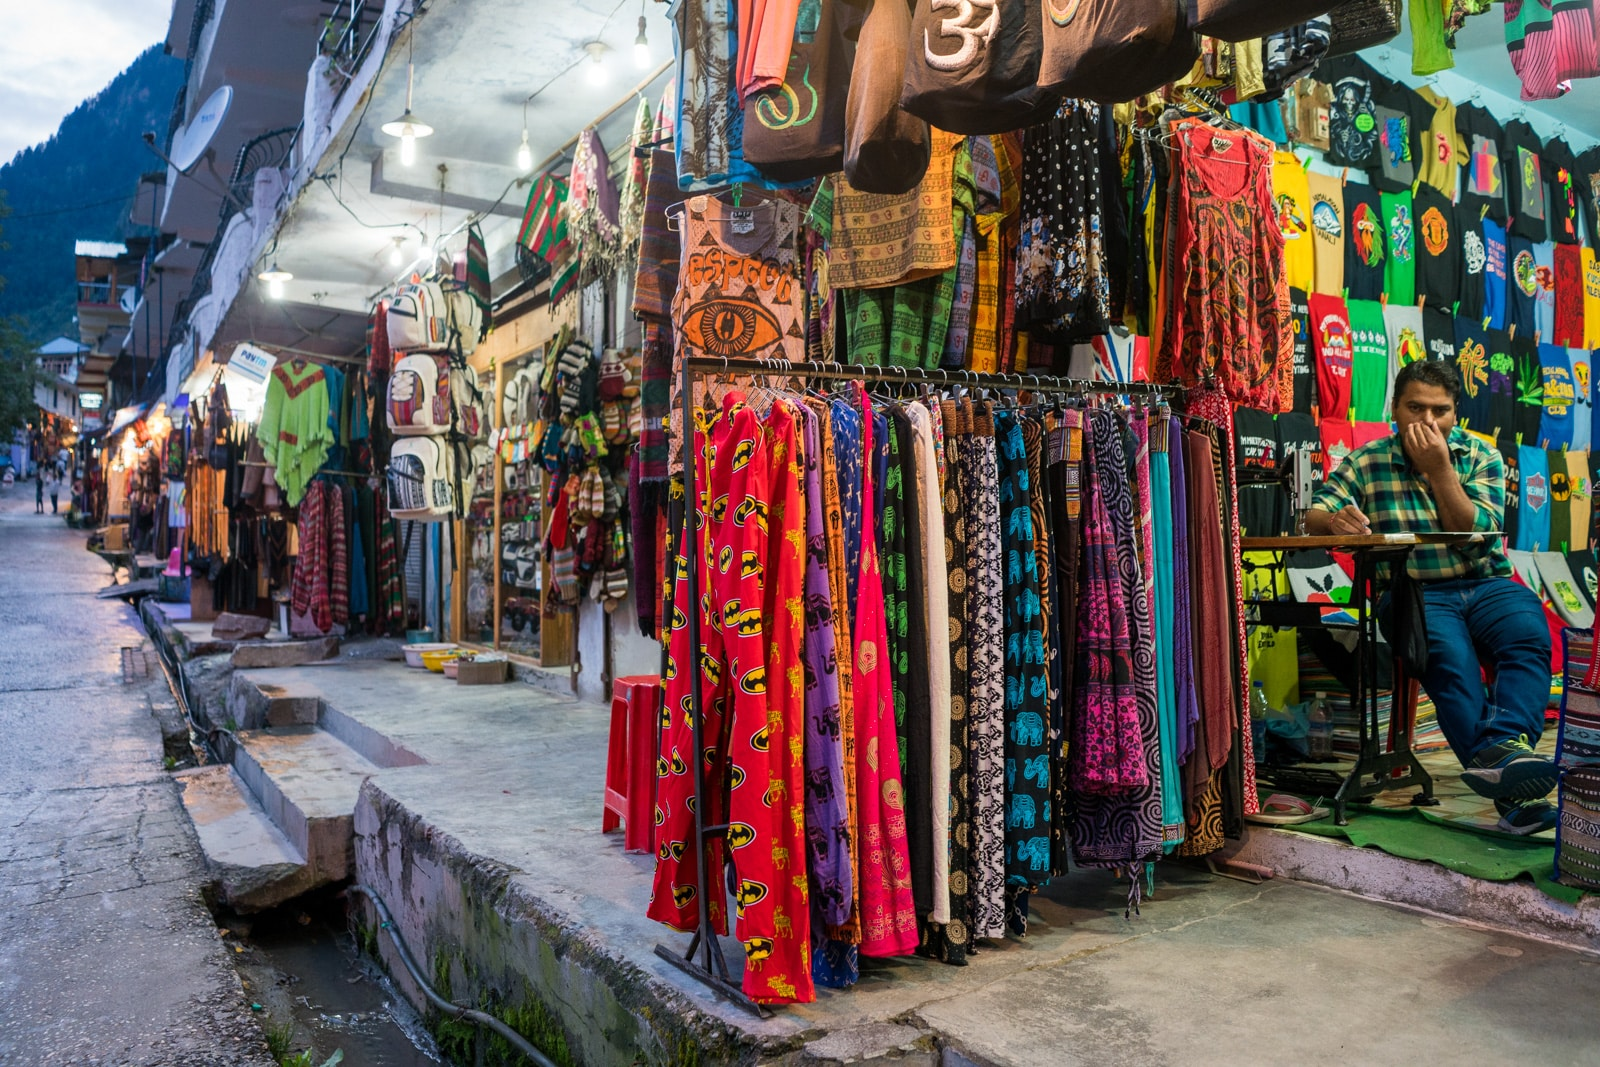 Guide to weed in India - Tacky pants on sale at souvenir stalls in Old Manali, the backpacker area - Lost With Purpose travel blog